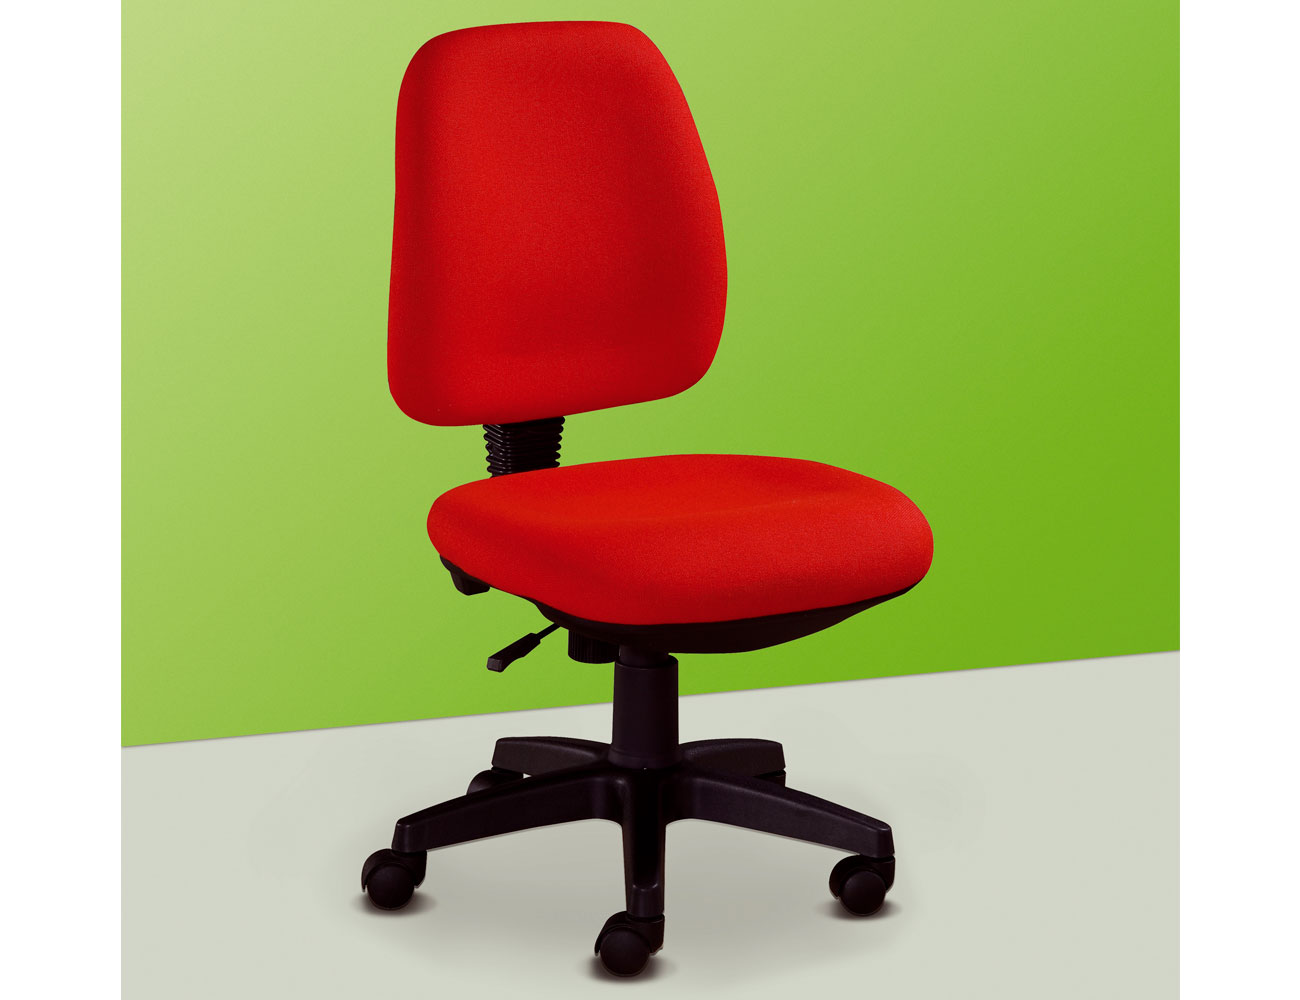 silla de oficina elevable en color rojo 19858 factory